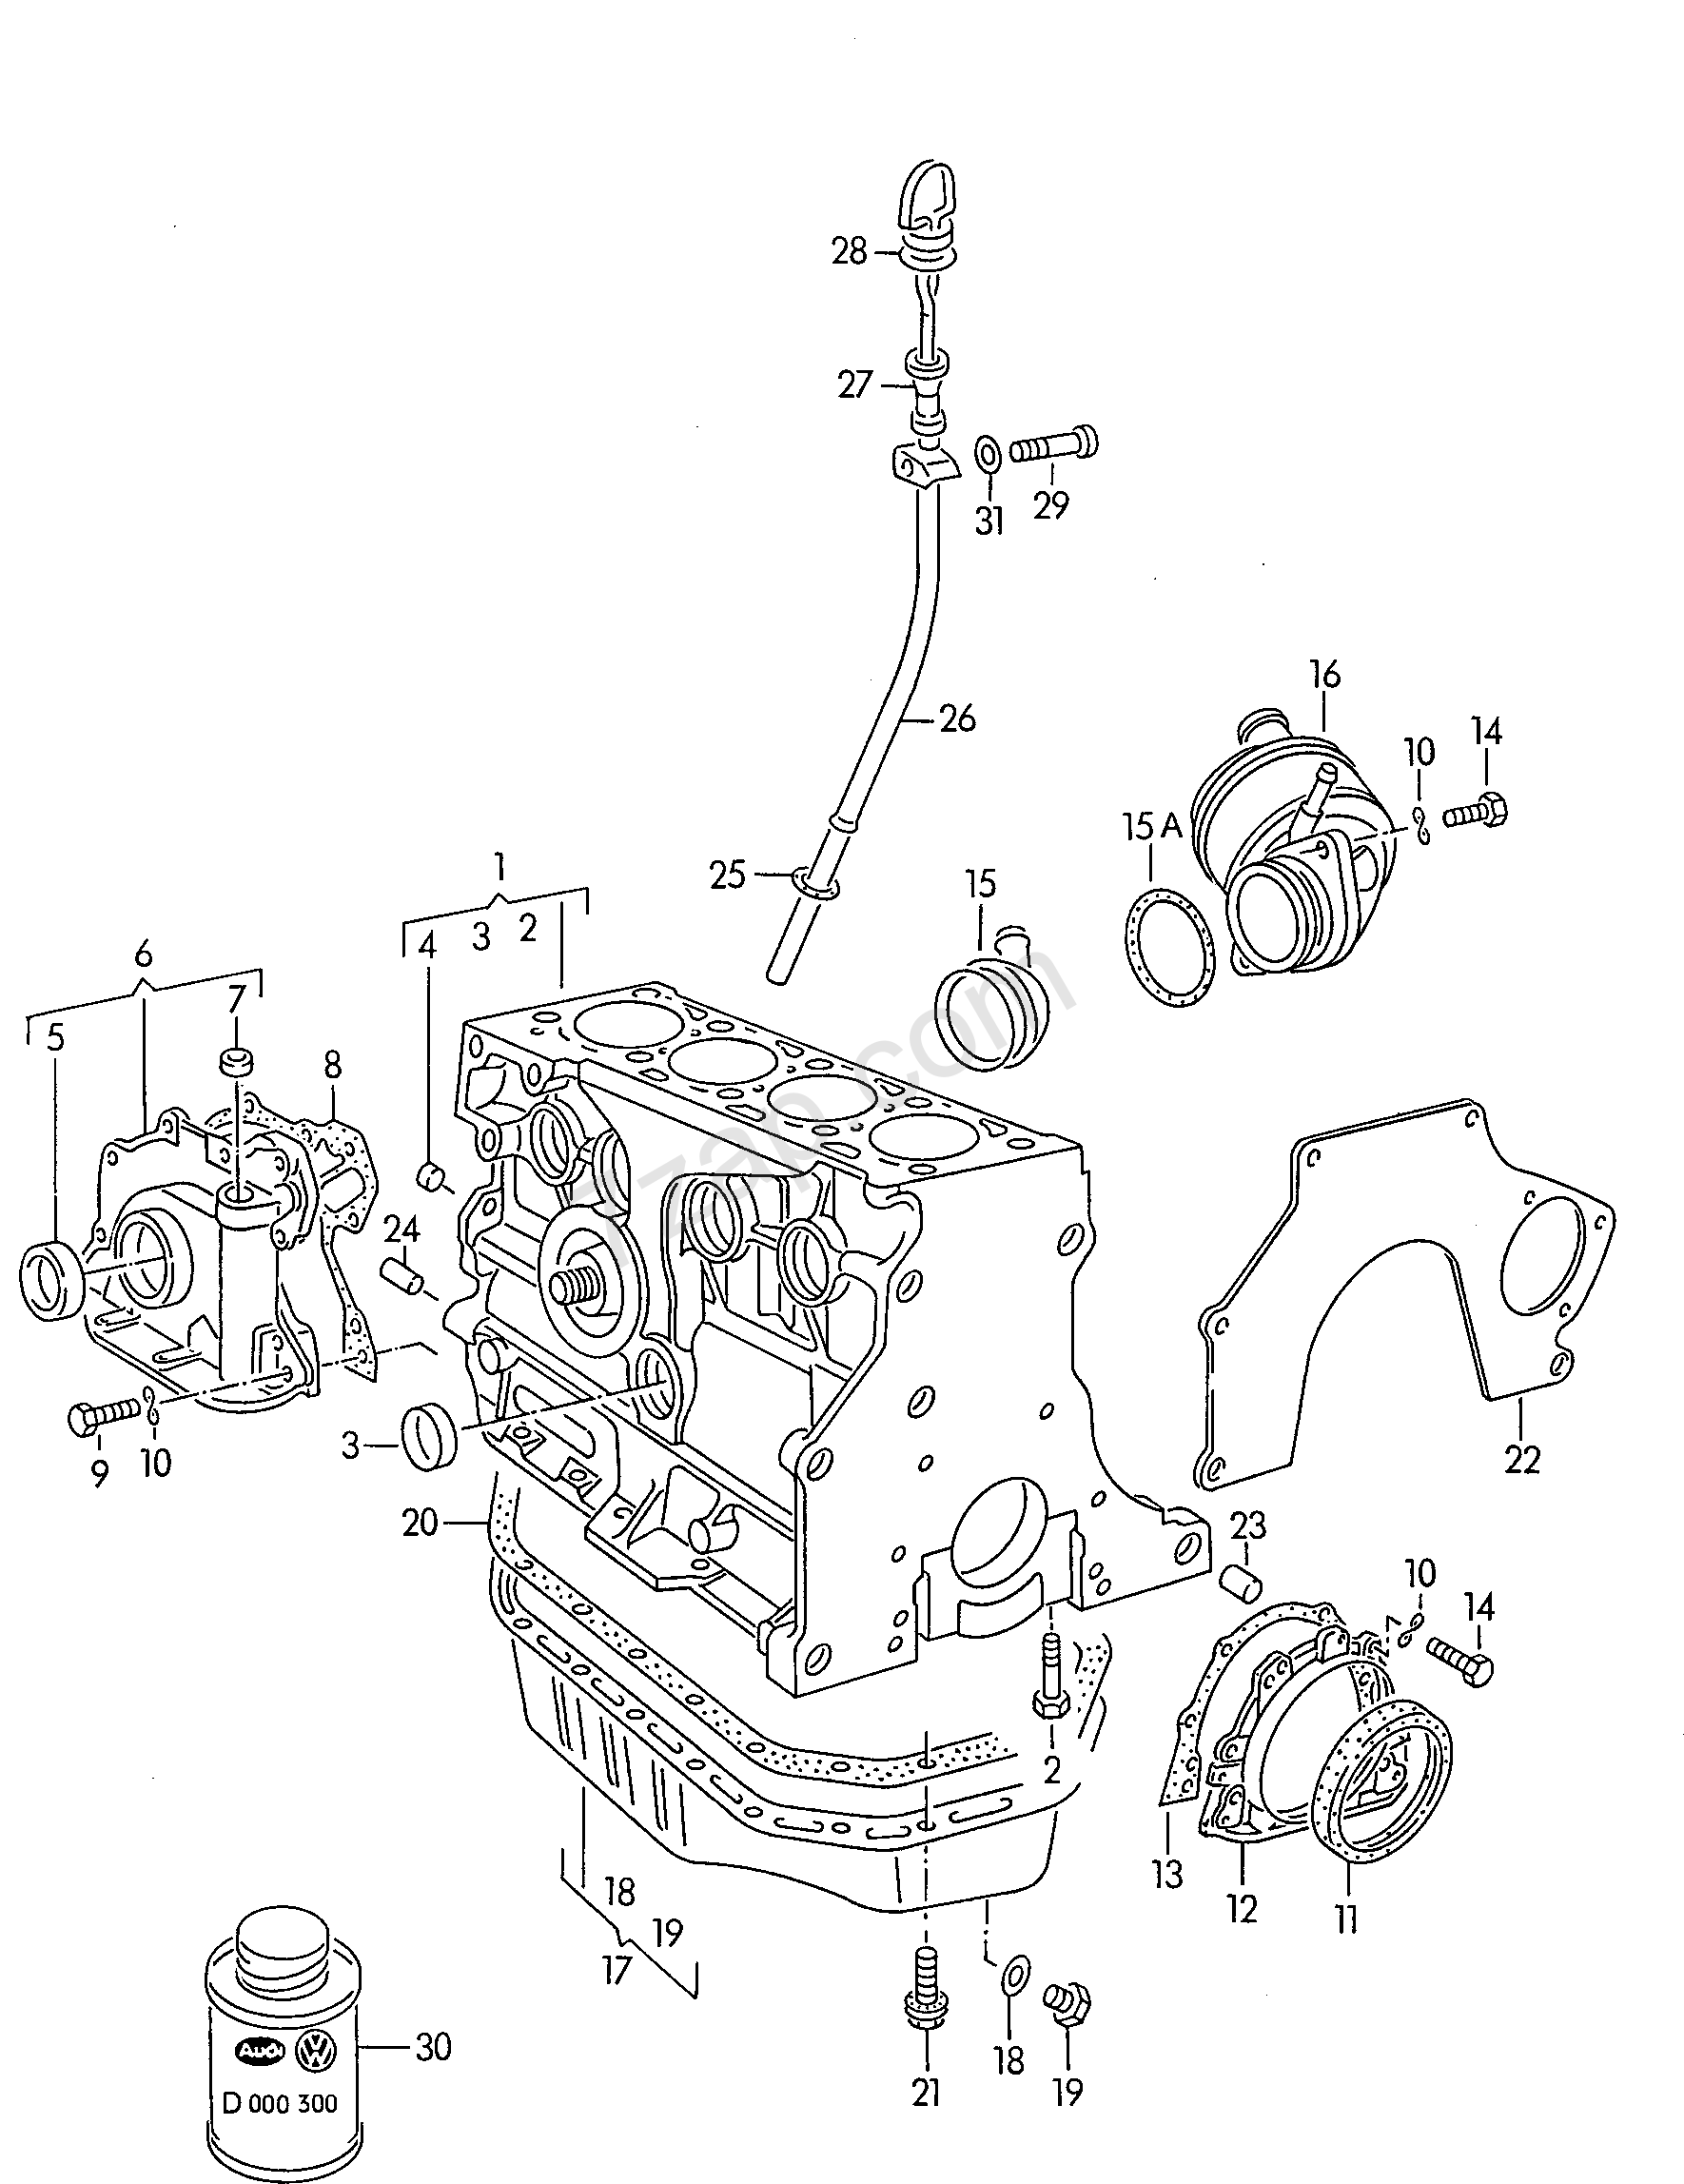 Cylinder Block With Pistons Oil Sump Polo Derby Vento Ind Po 1992 Vw Engine Piston Diagram Indpo Europa Year